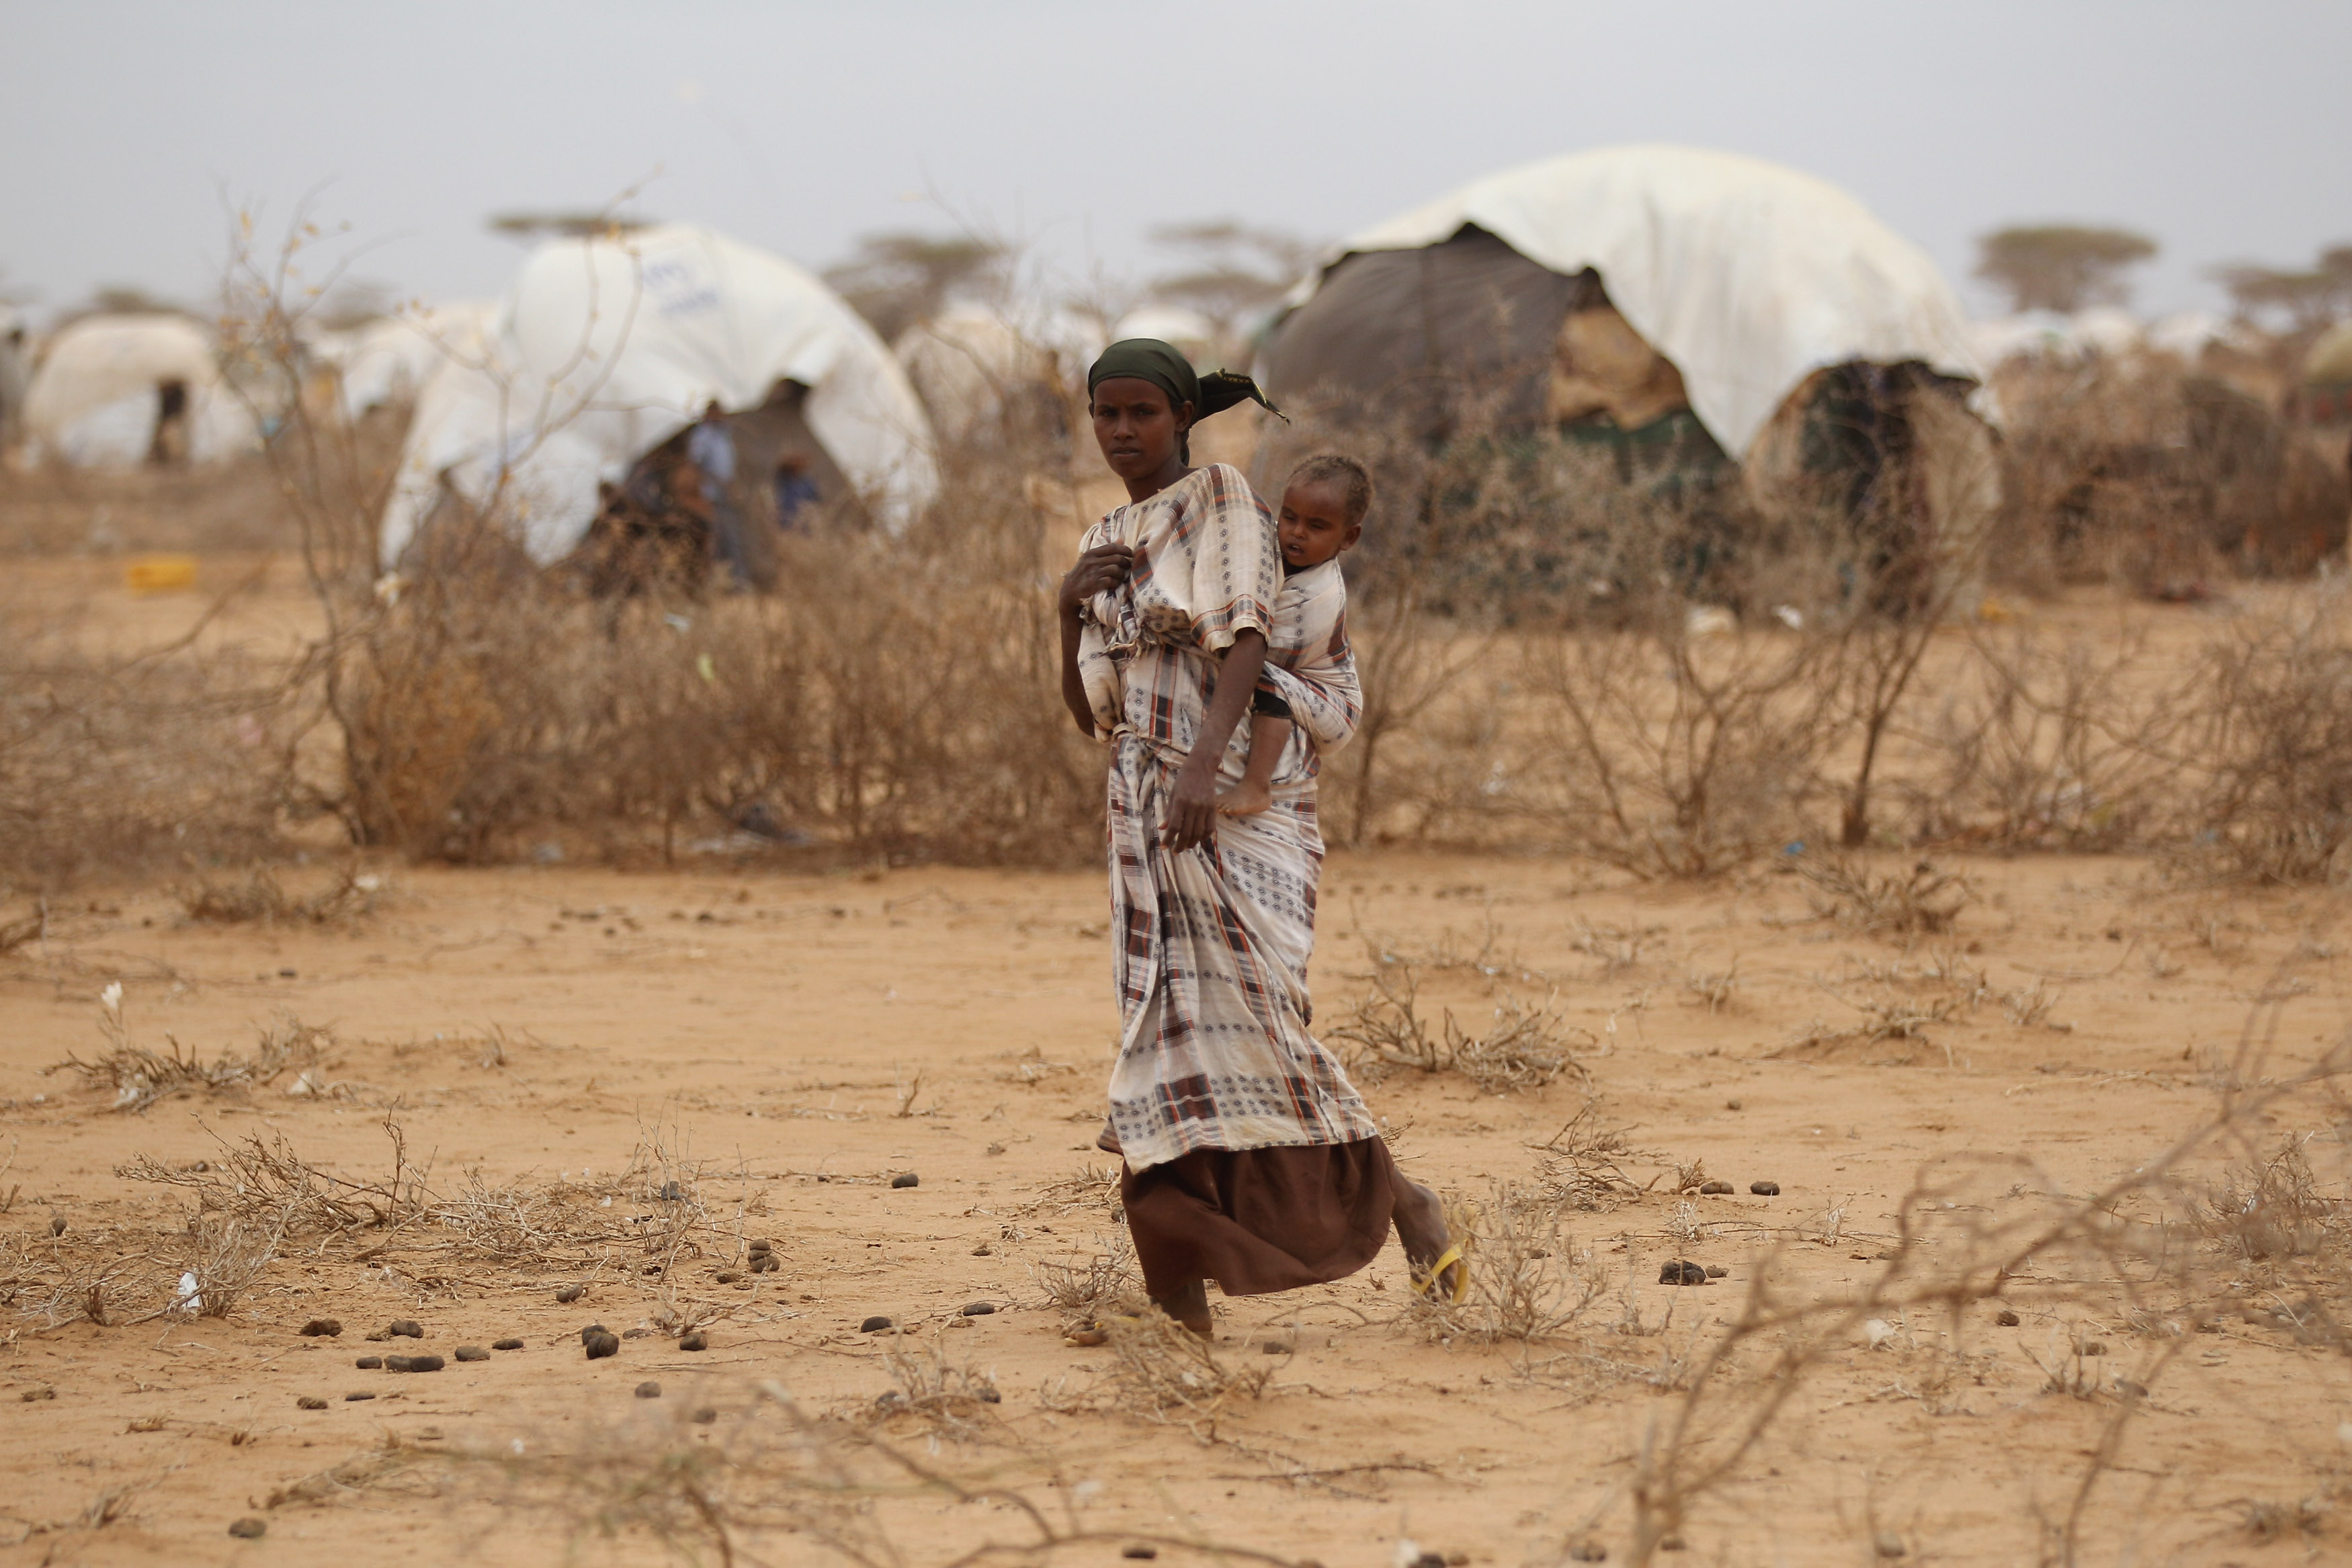 U.S. musters response to 'staggering hunger' in Horn of Africa